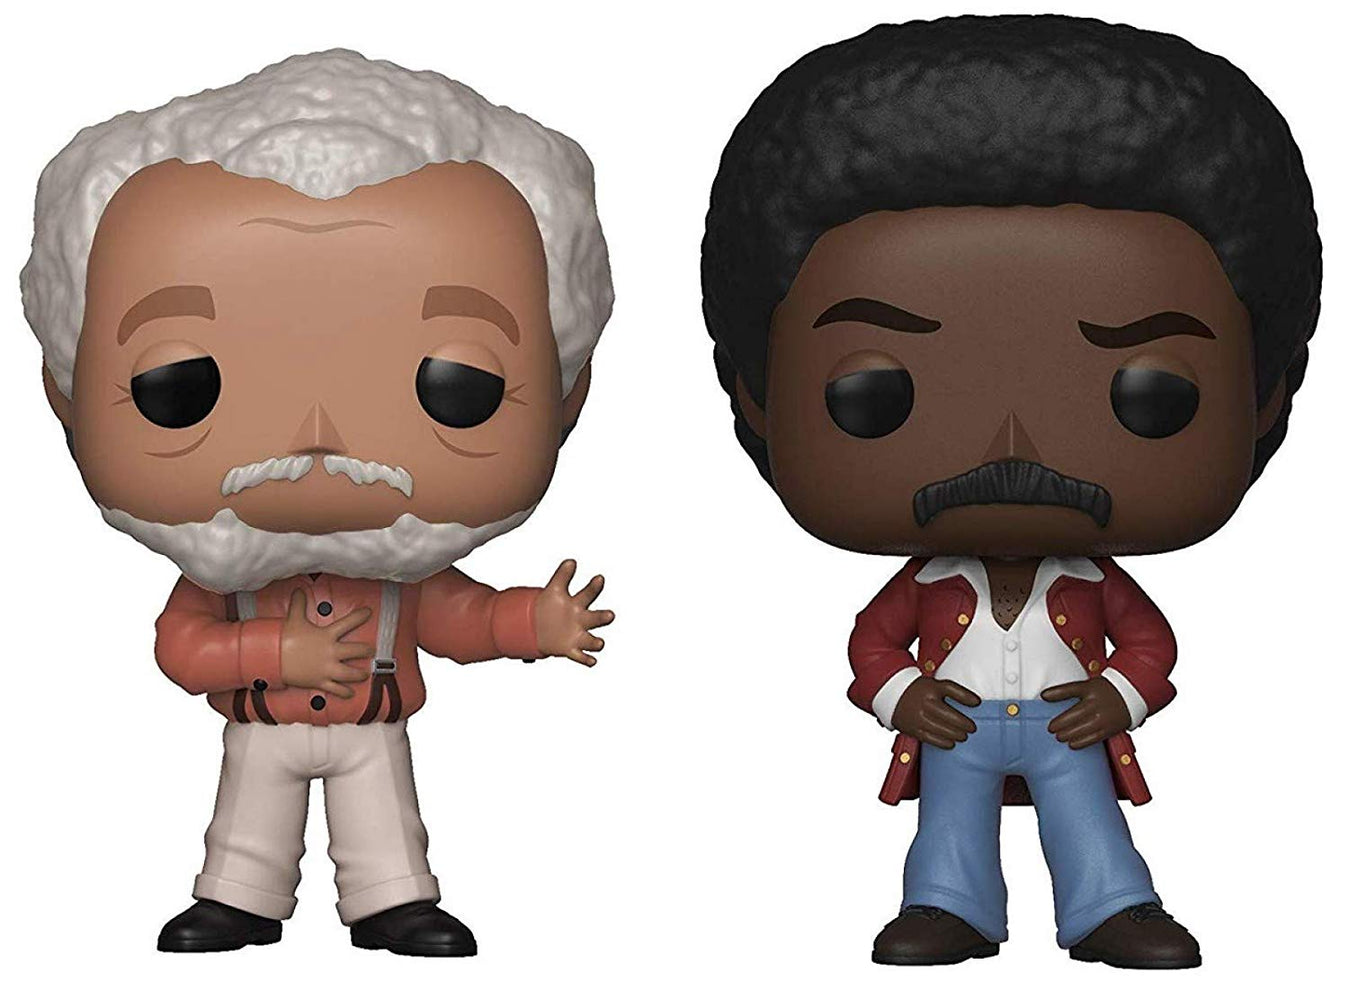 Funko Pop! Television: Sanford & Son (Set of 2)